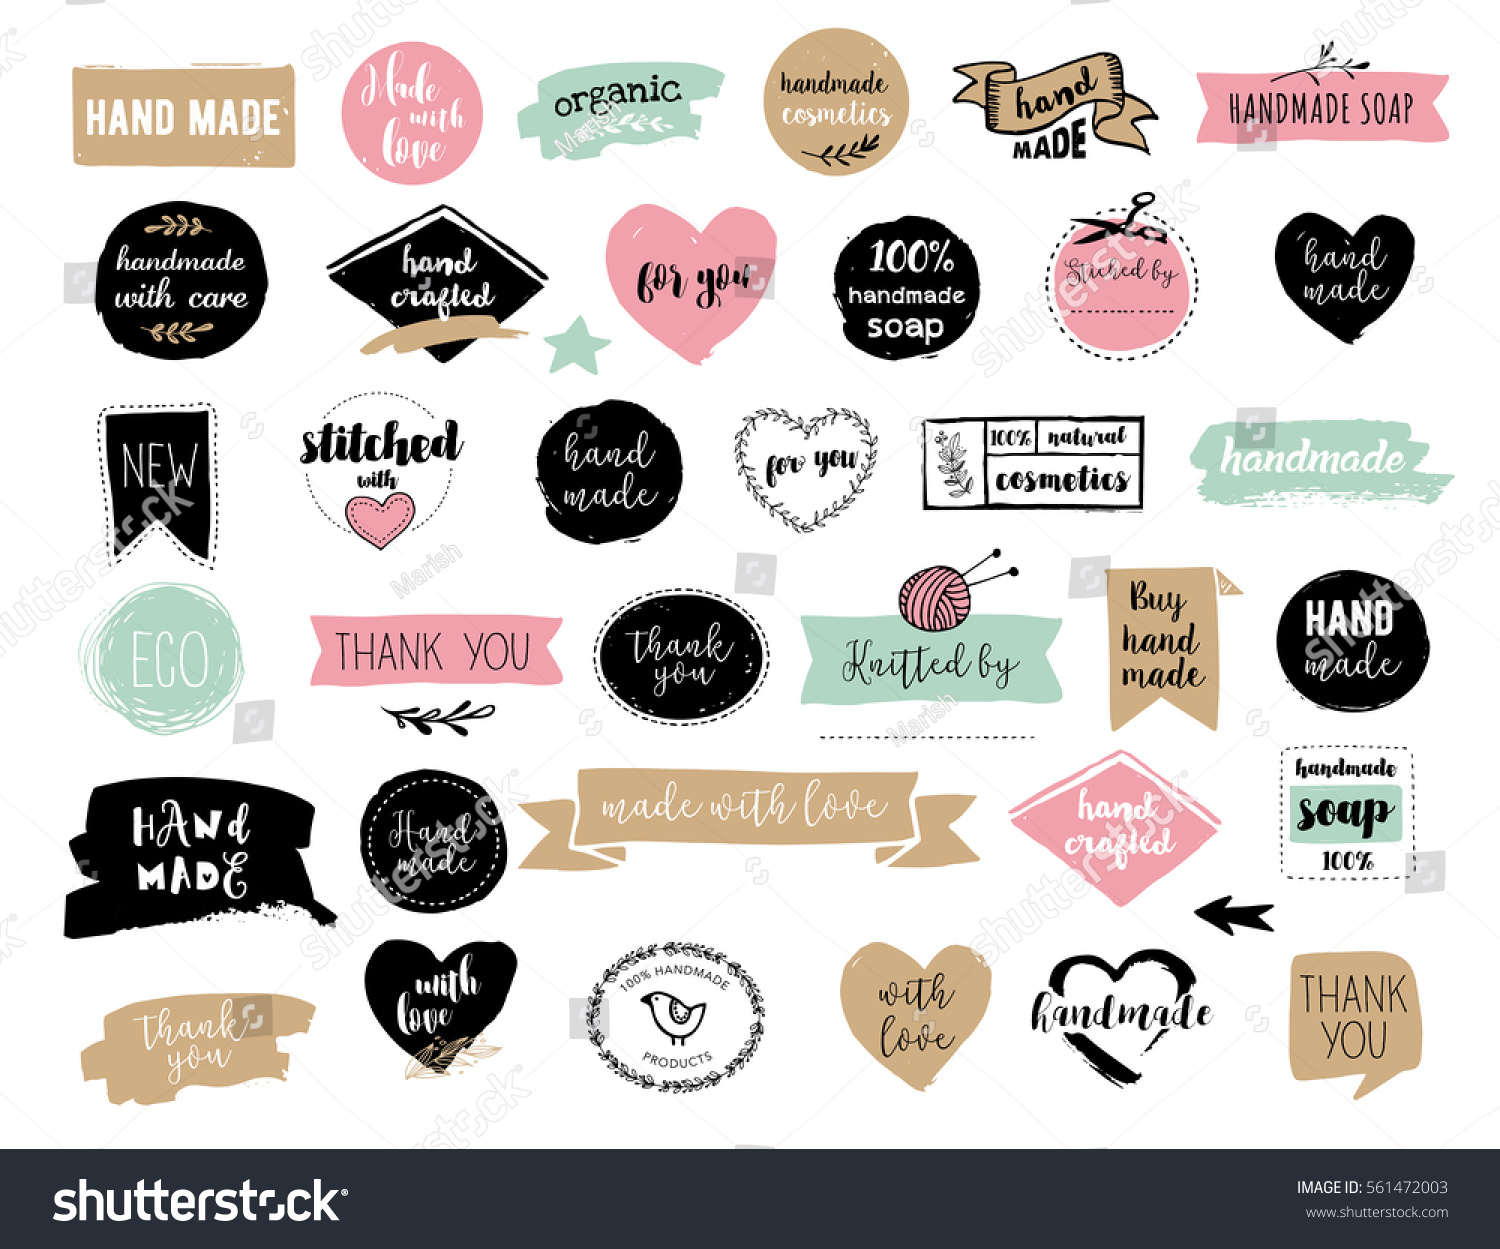 Hand drawn vector handmade craft knitting stock vector for Custom tags for crafts